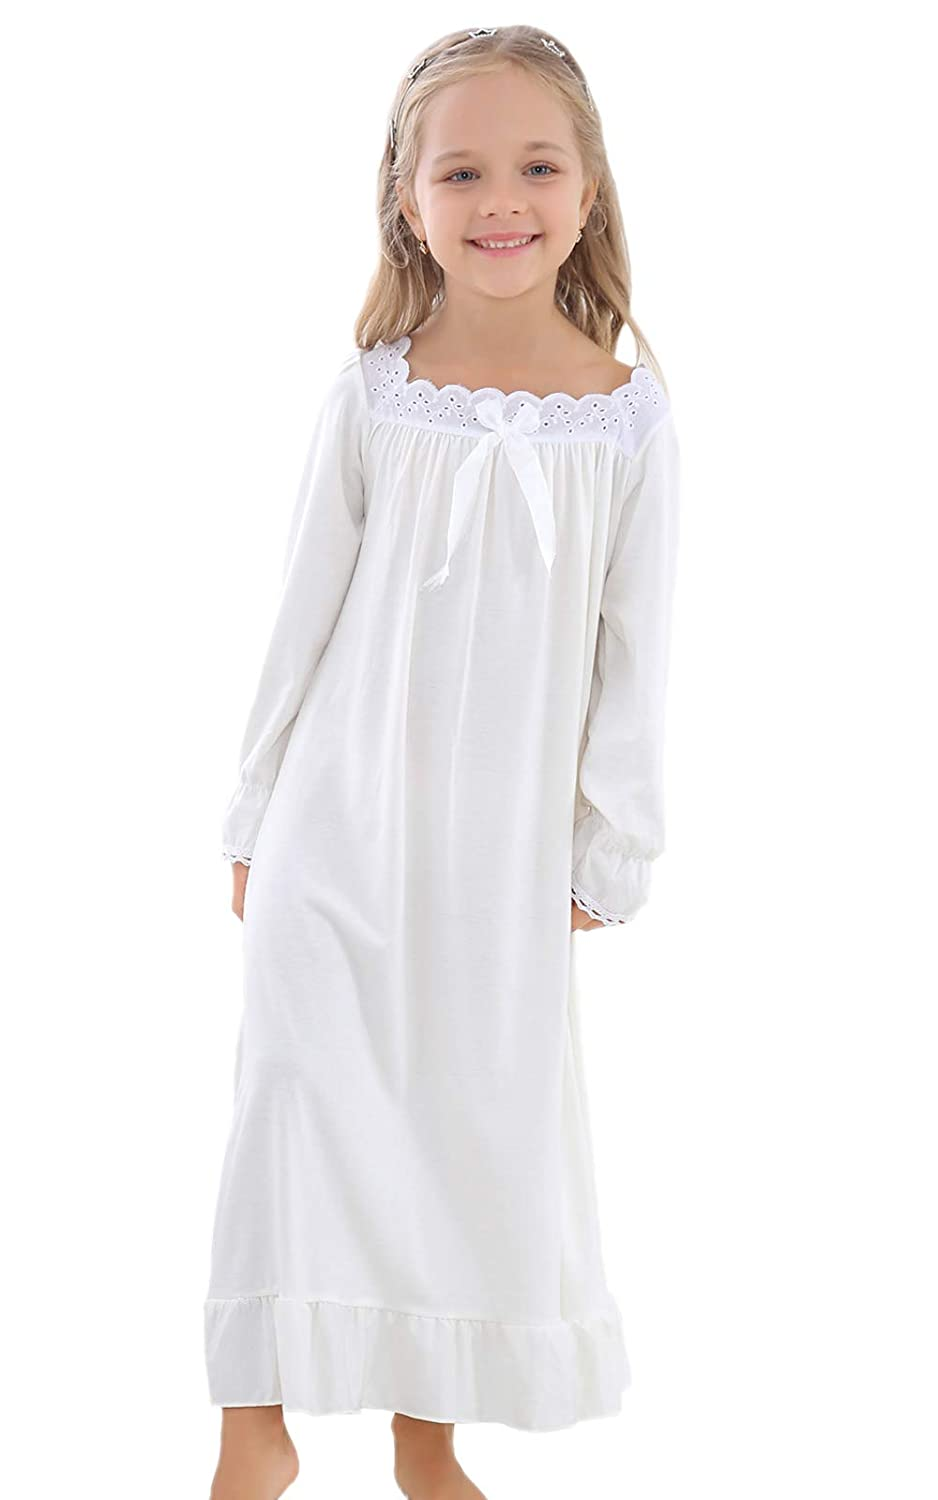 Victorian Kids Costumes & Shoes- Girls, Boys, Baby, Toddler Horcute Girls Cotton Long and Short Sleeve Sleepshirts Nightshirts Pajamas Nightgown for 3-12 Years $17.99 AT vintagedancer.com